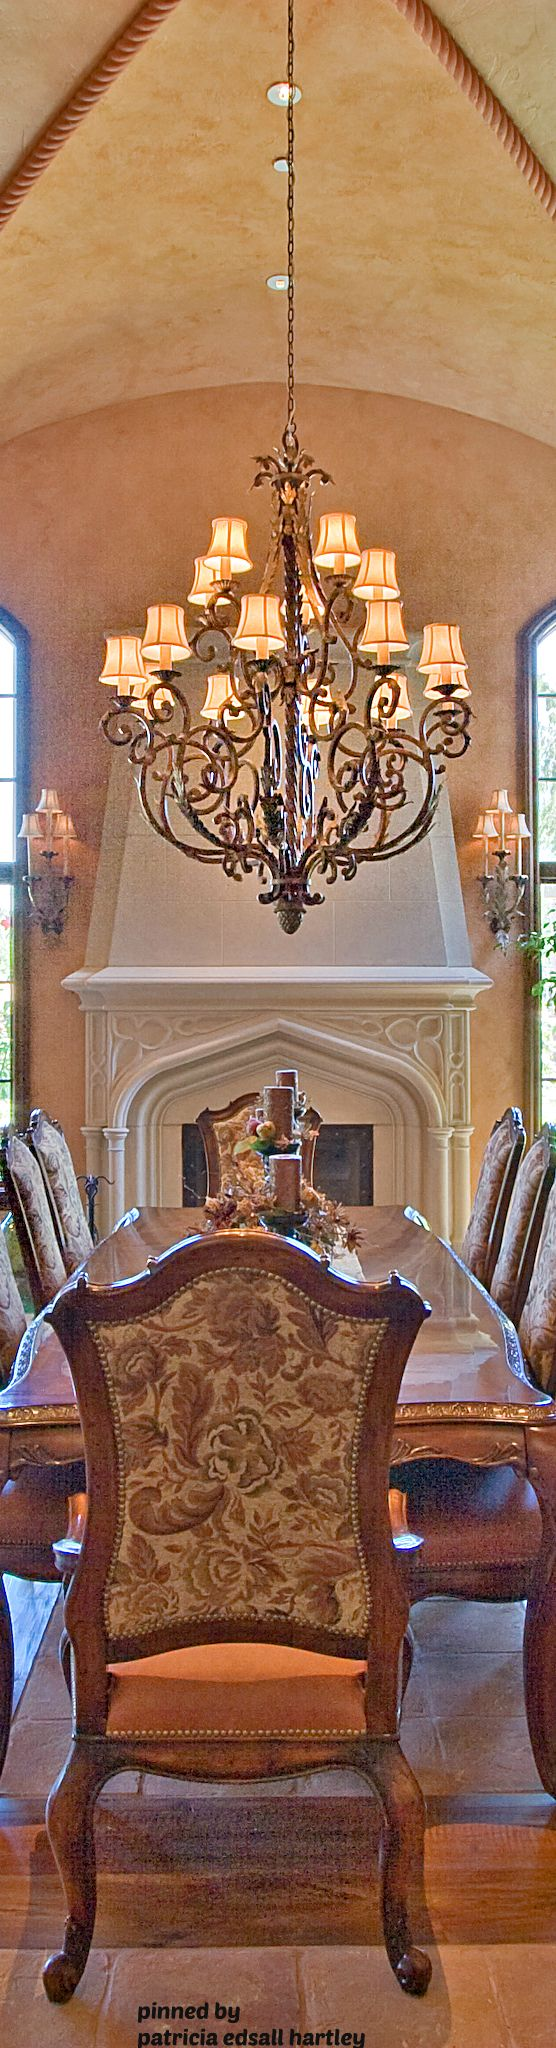 70 best dining room chairs images on Pinterest